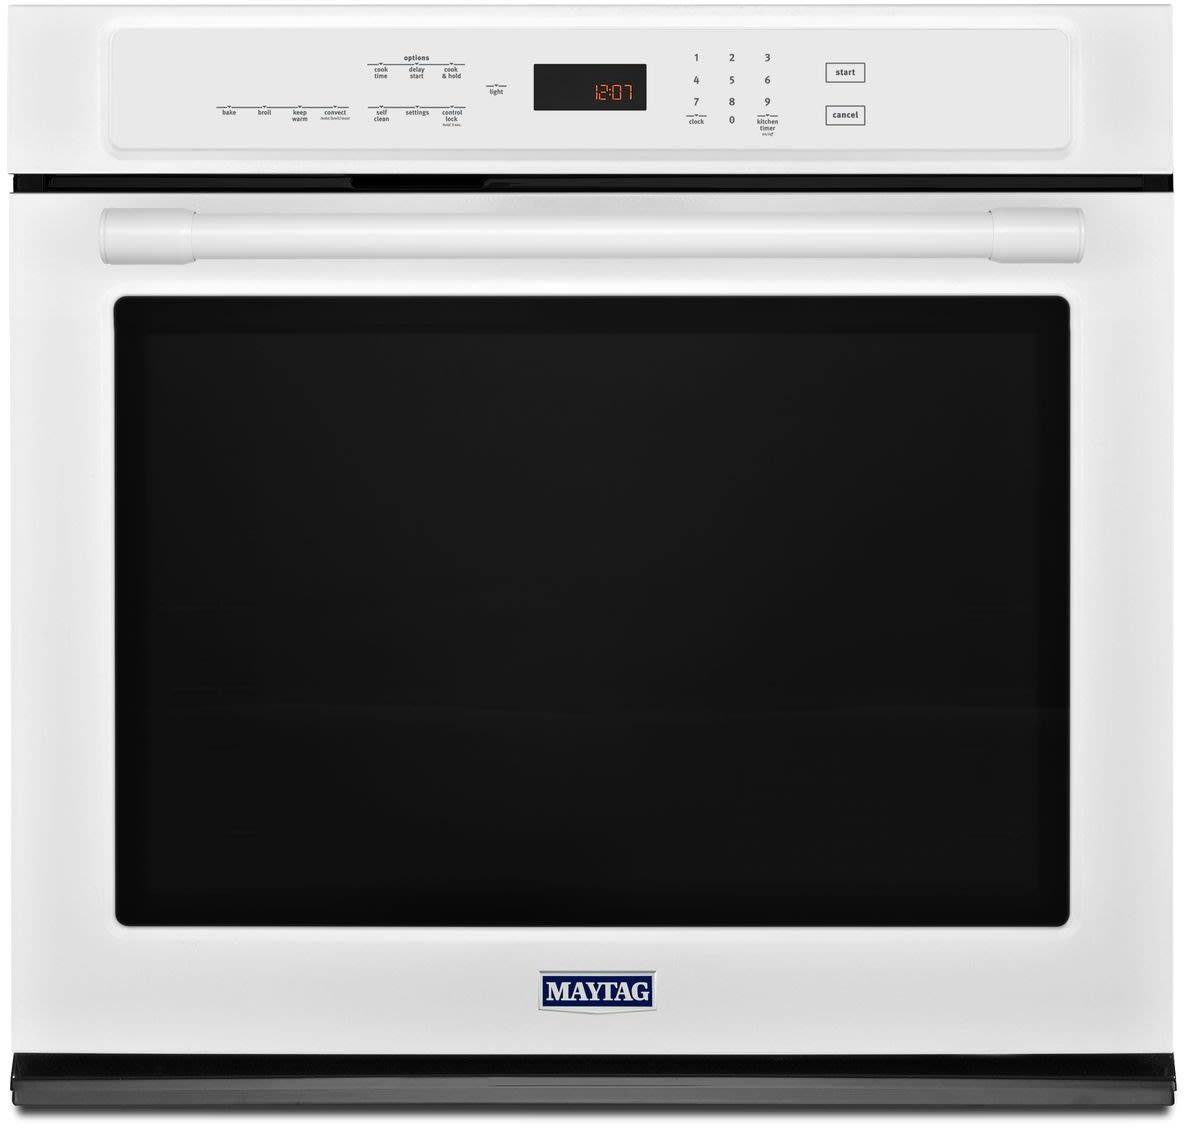 Maytag Mew9530fw 30 Inch Electric Wall Oven With 5 0 Cu